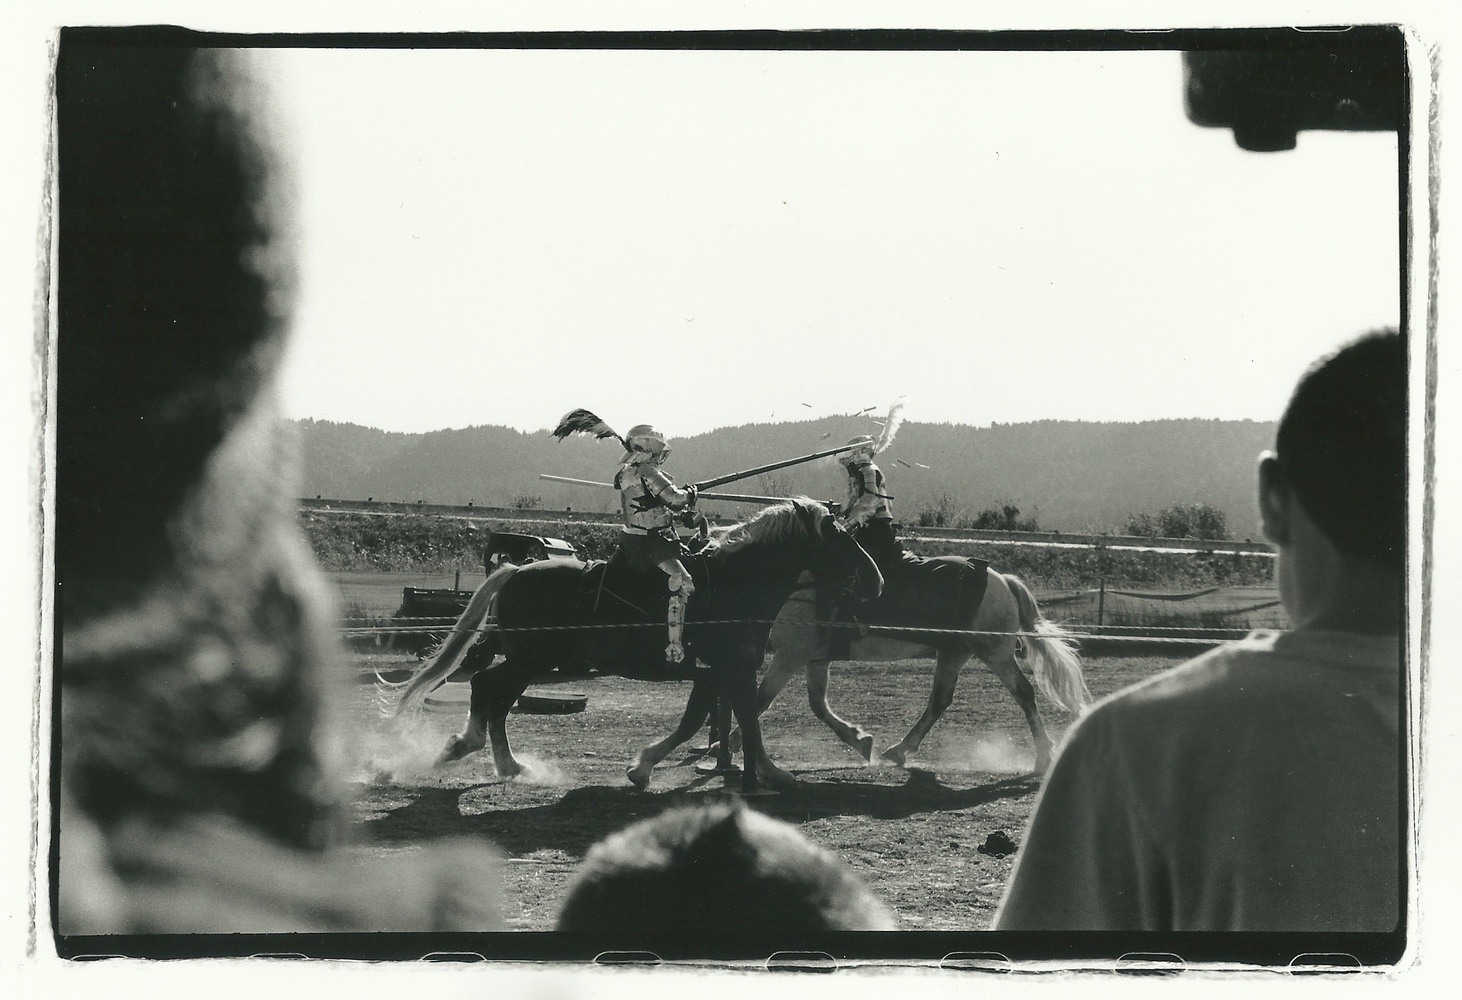 Jousting on 35mm Film by Thomas Lal